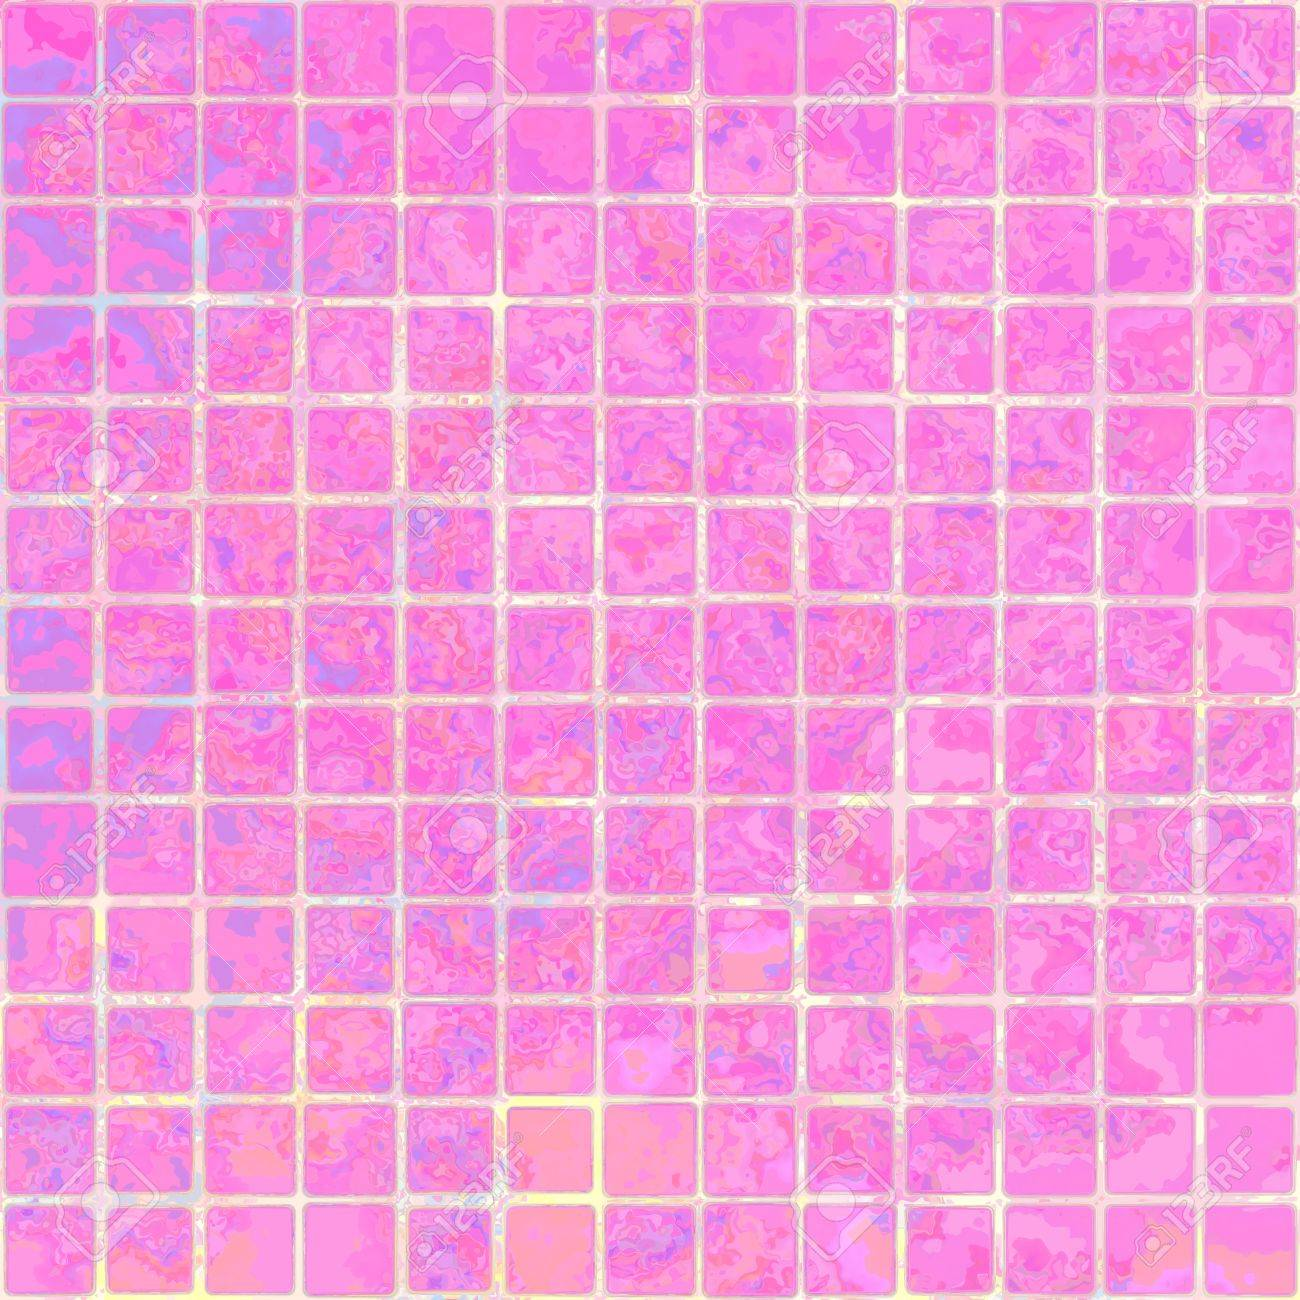 Sweet Pink Marble Square Floor Tiles With Light Gap Seamless Stock Photo Picture And Royalty Free Image Image 54218194